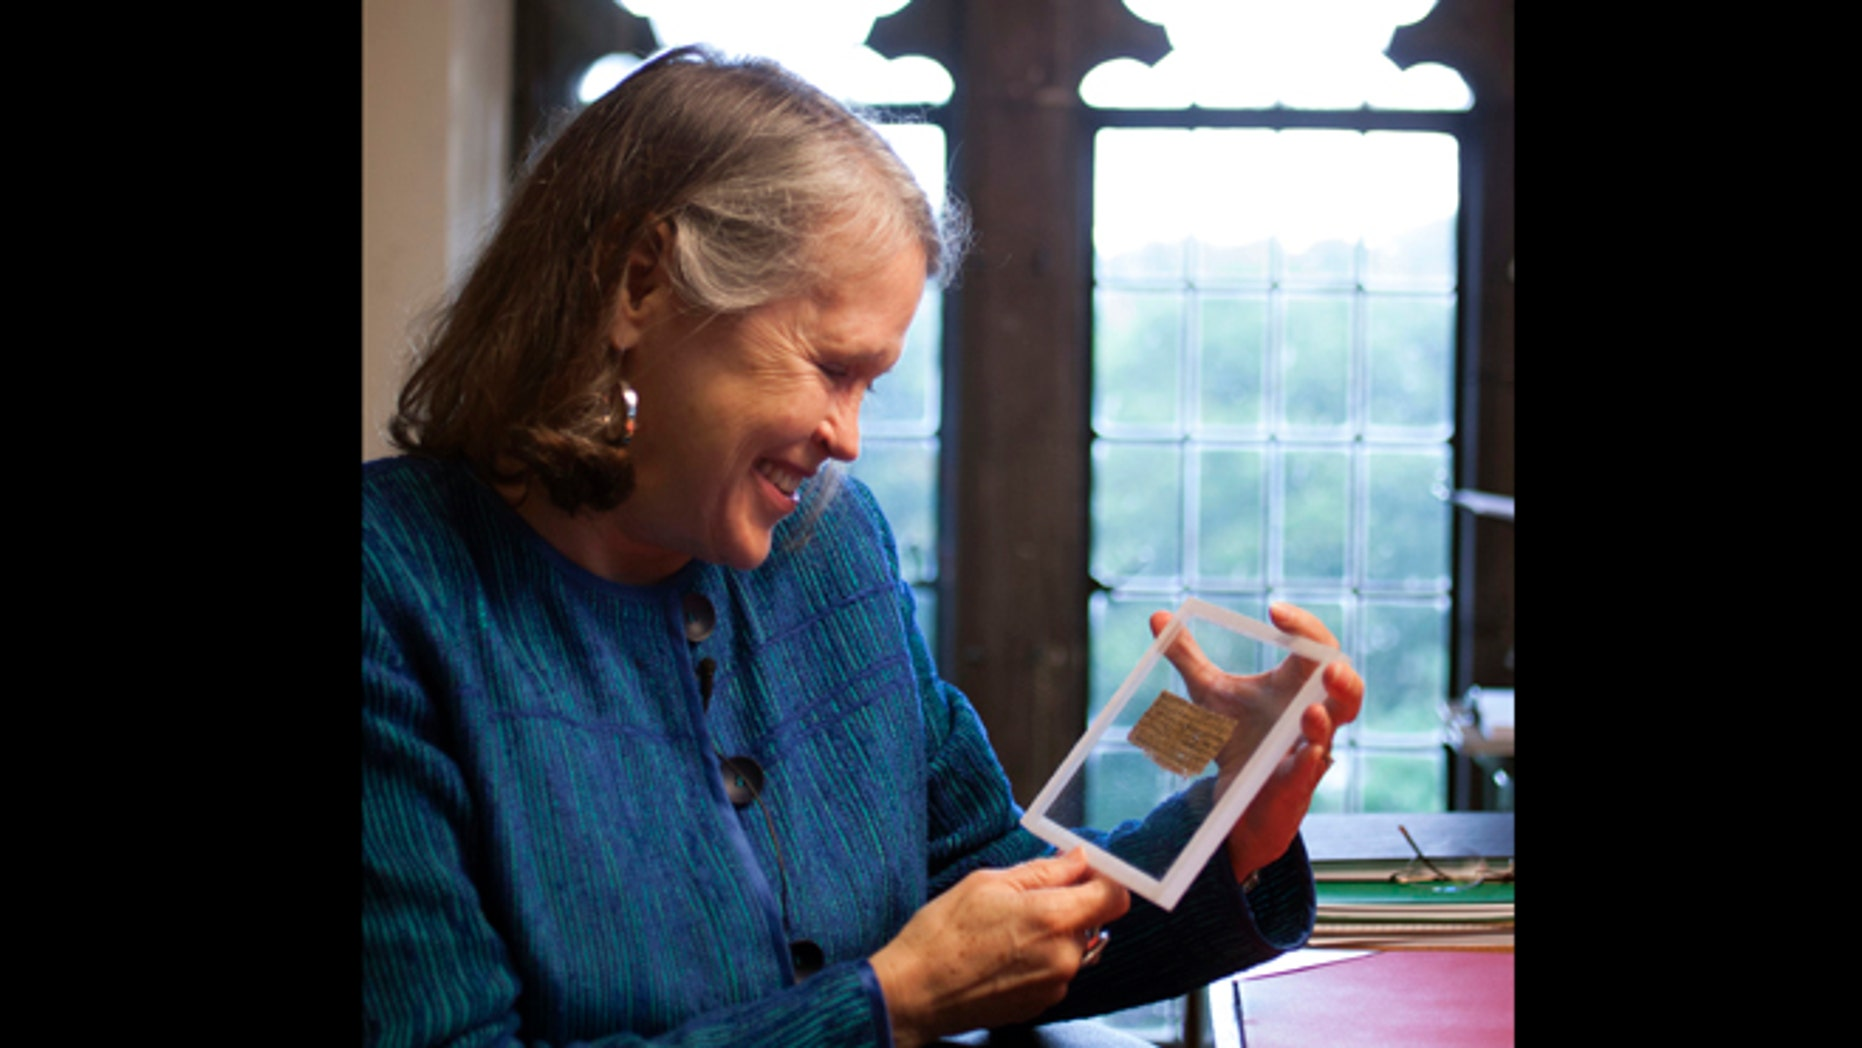 Sept. 5, 2012: Divinity professor Karen L. King holds a fourth century fragment of papyrus that she says is the only existing ancient text that quotes Jesus explicitly referring to having a wife.